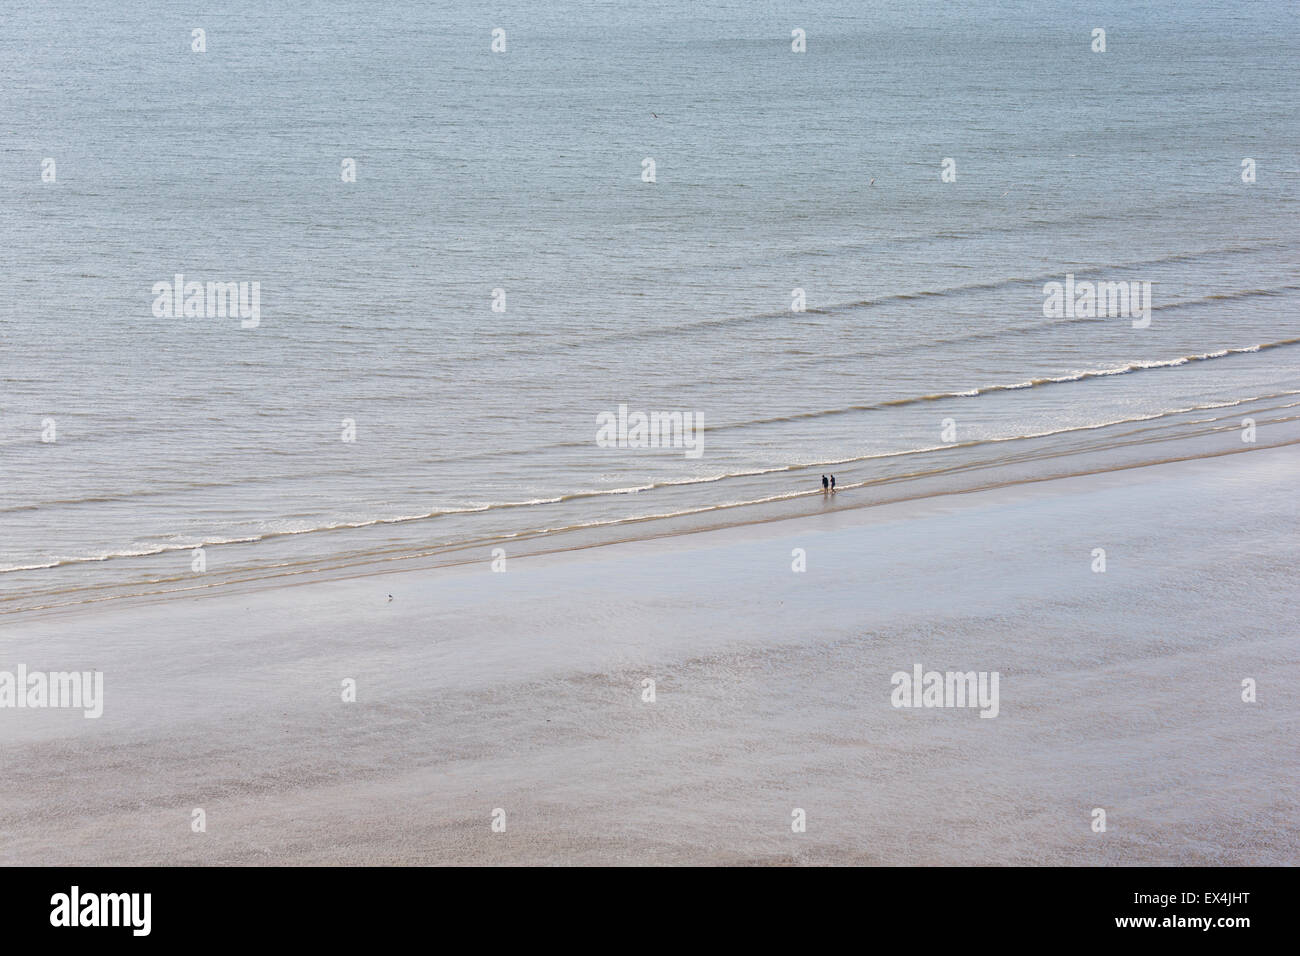 Two people on a deserted beach, Rhossili, Gower, South Wales - Stock Image